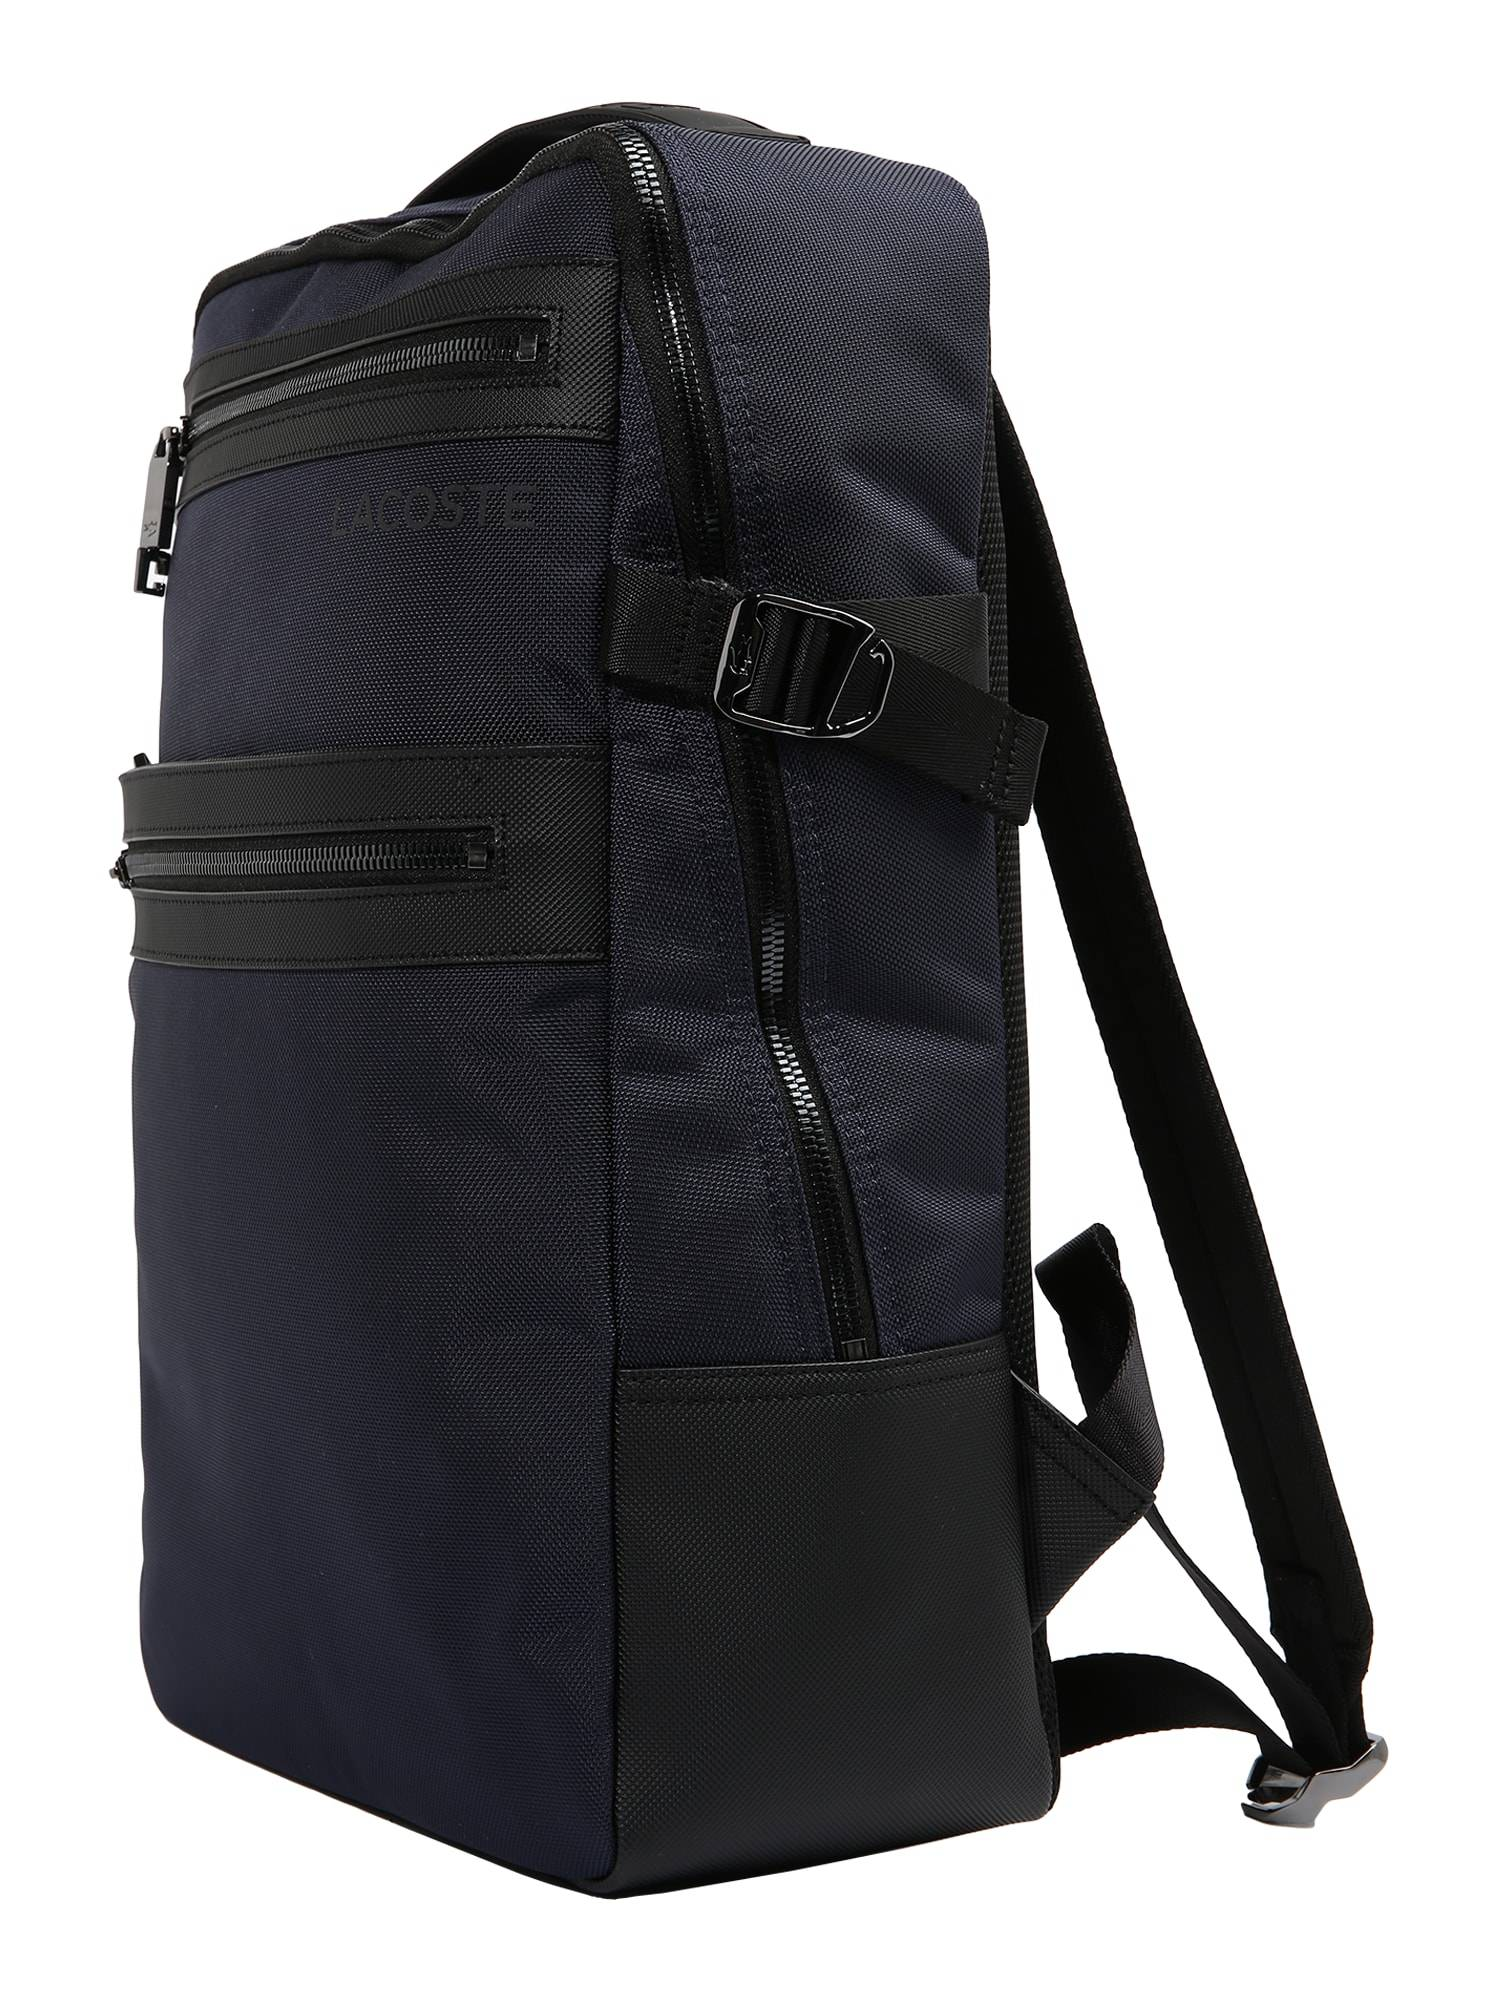 LACOSTE Sac à dos 'On The Go'  - Bleu - Taille: One Size - male